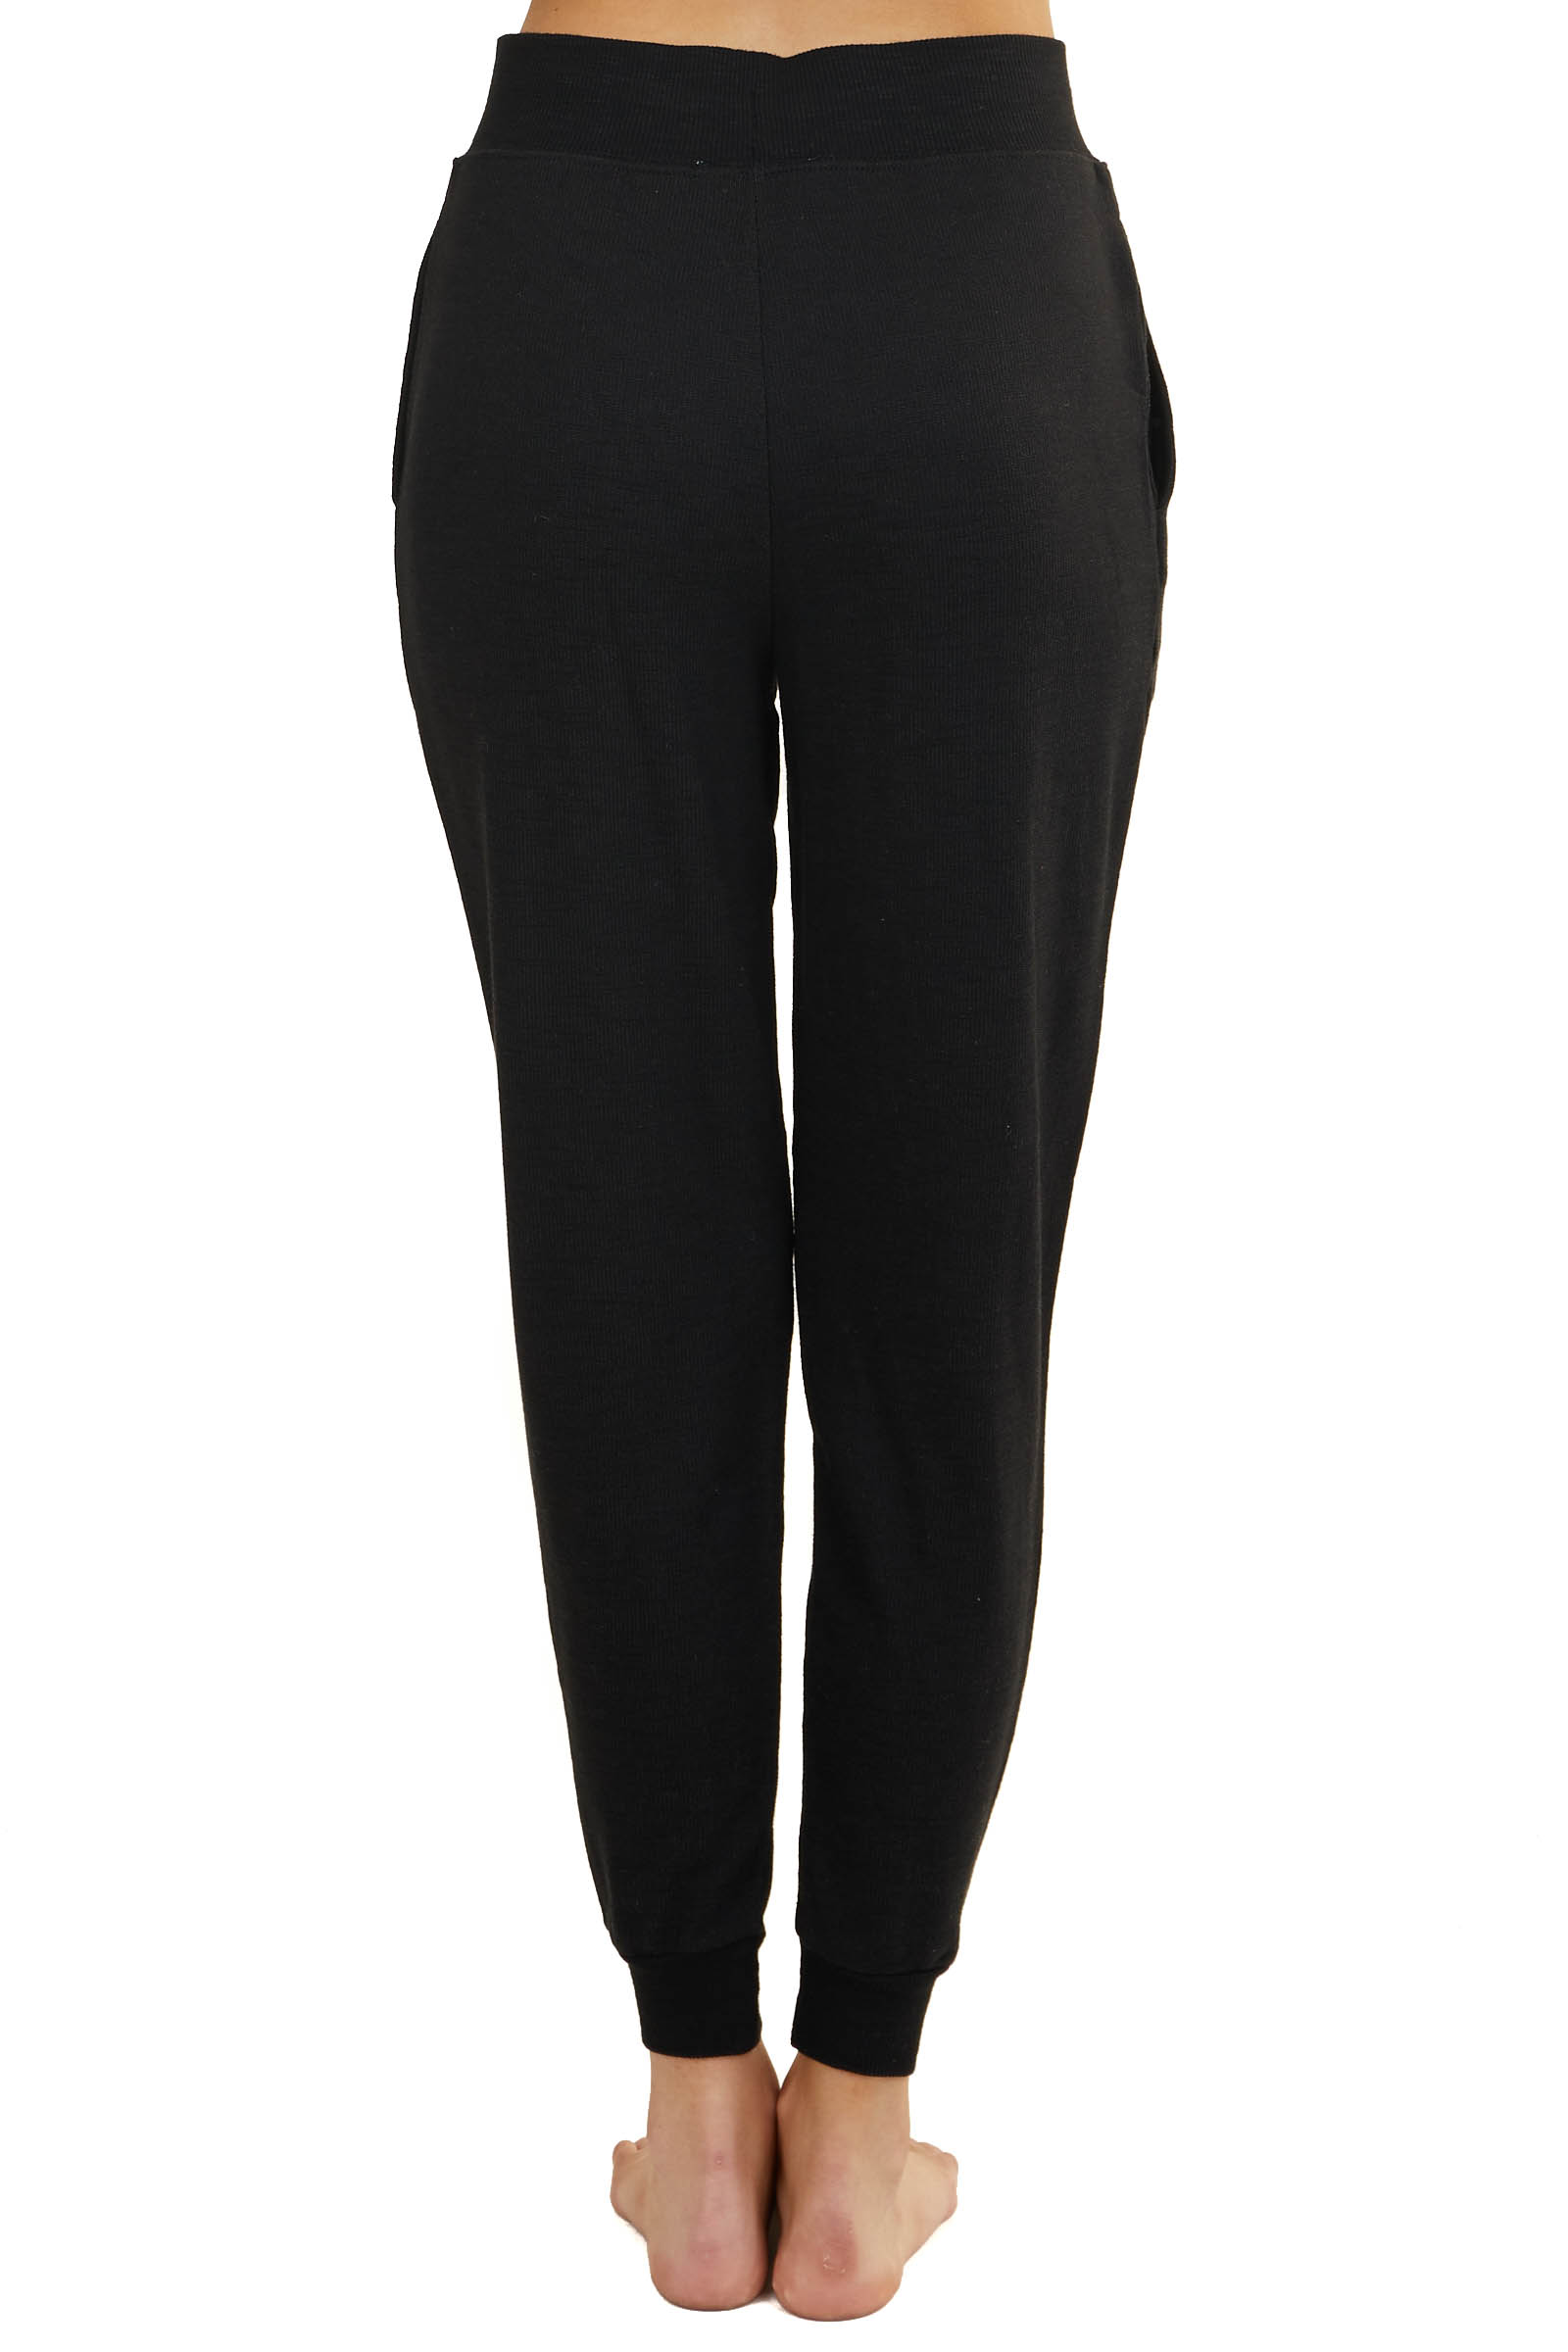 Black Knit Joggers with Drawstring and Side Pockets